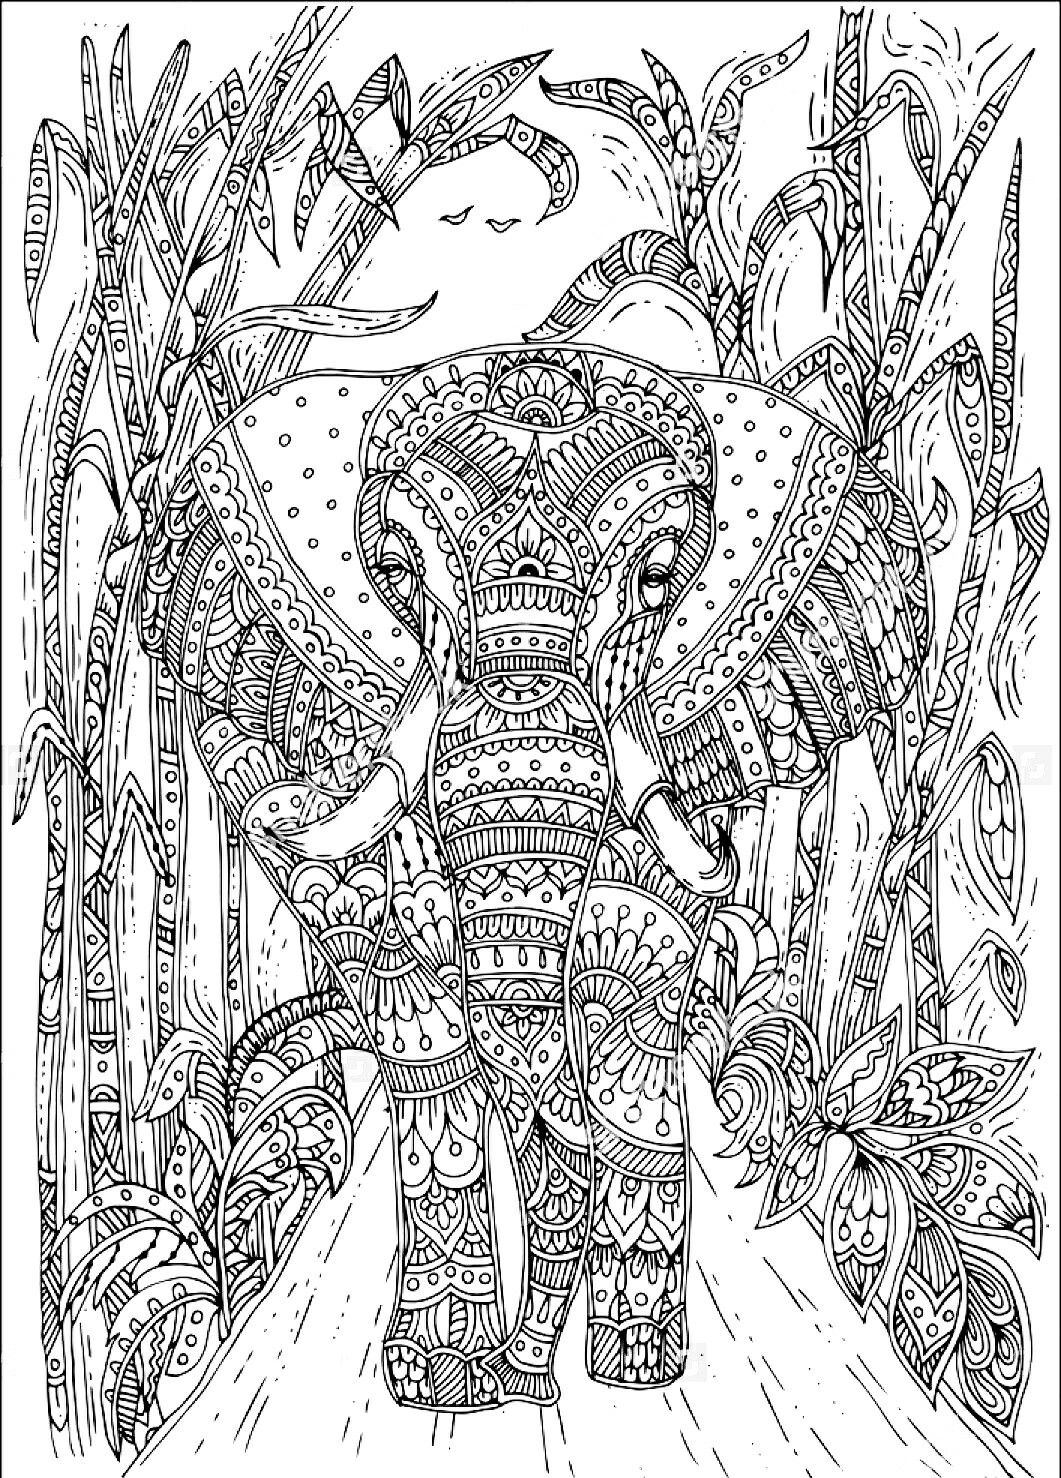 Pin by Debbie Johnson on Drawings | Pinterest | Adult coloring ...